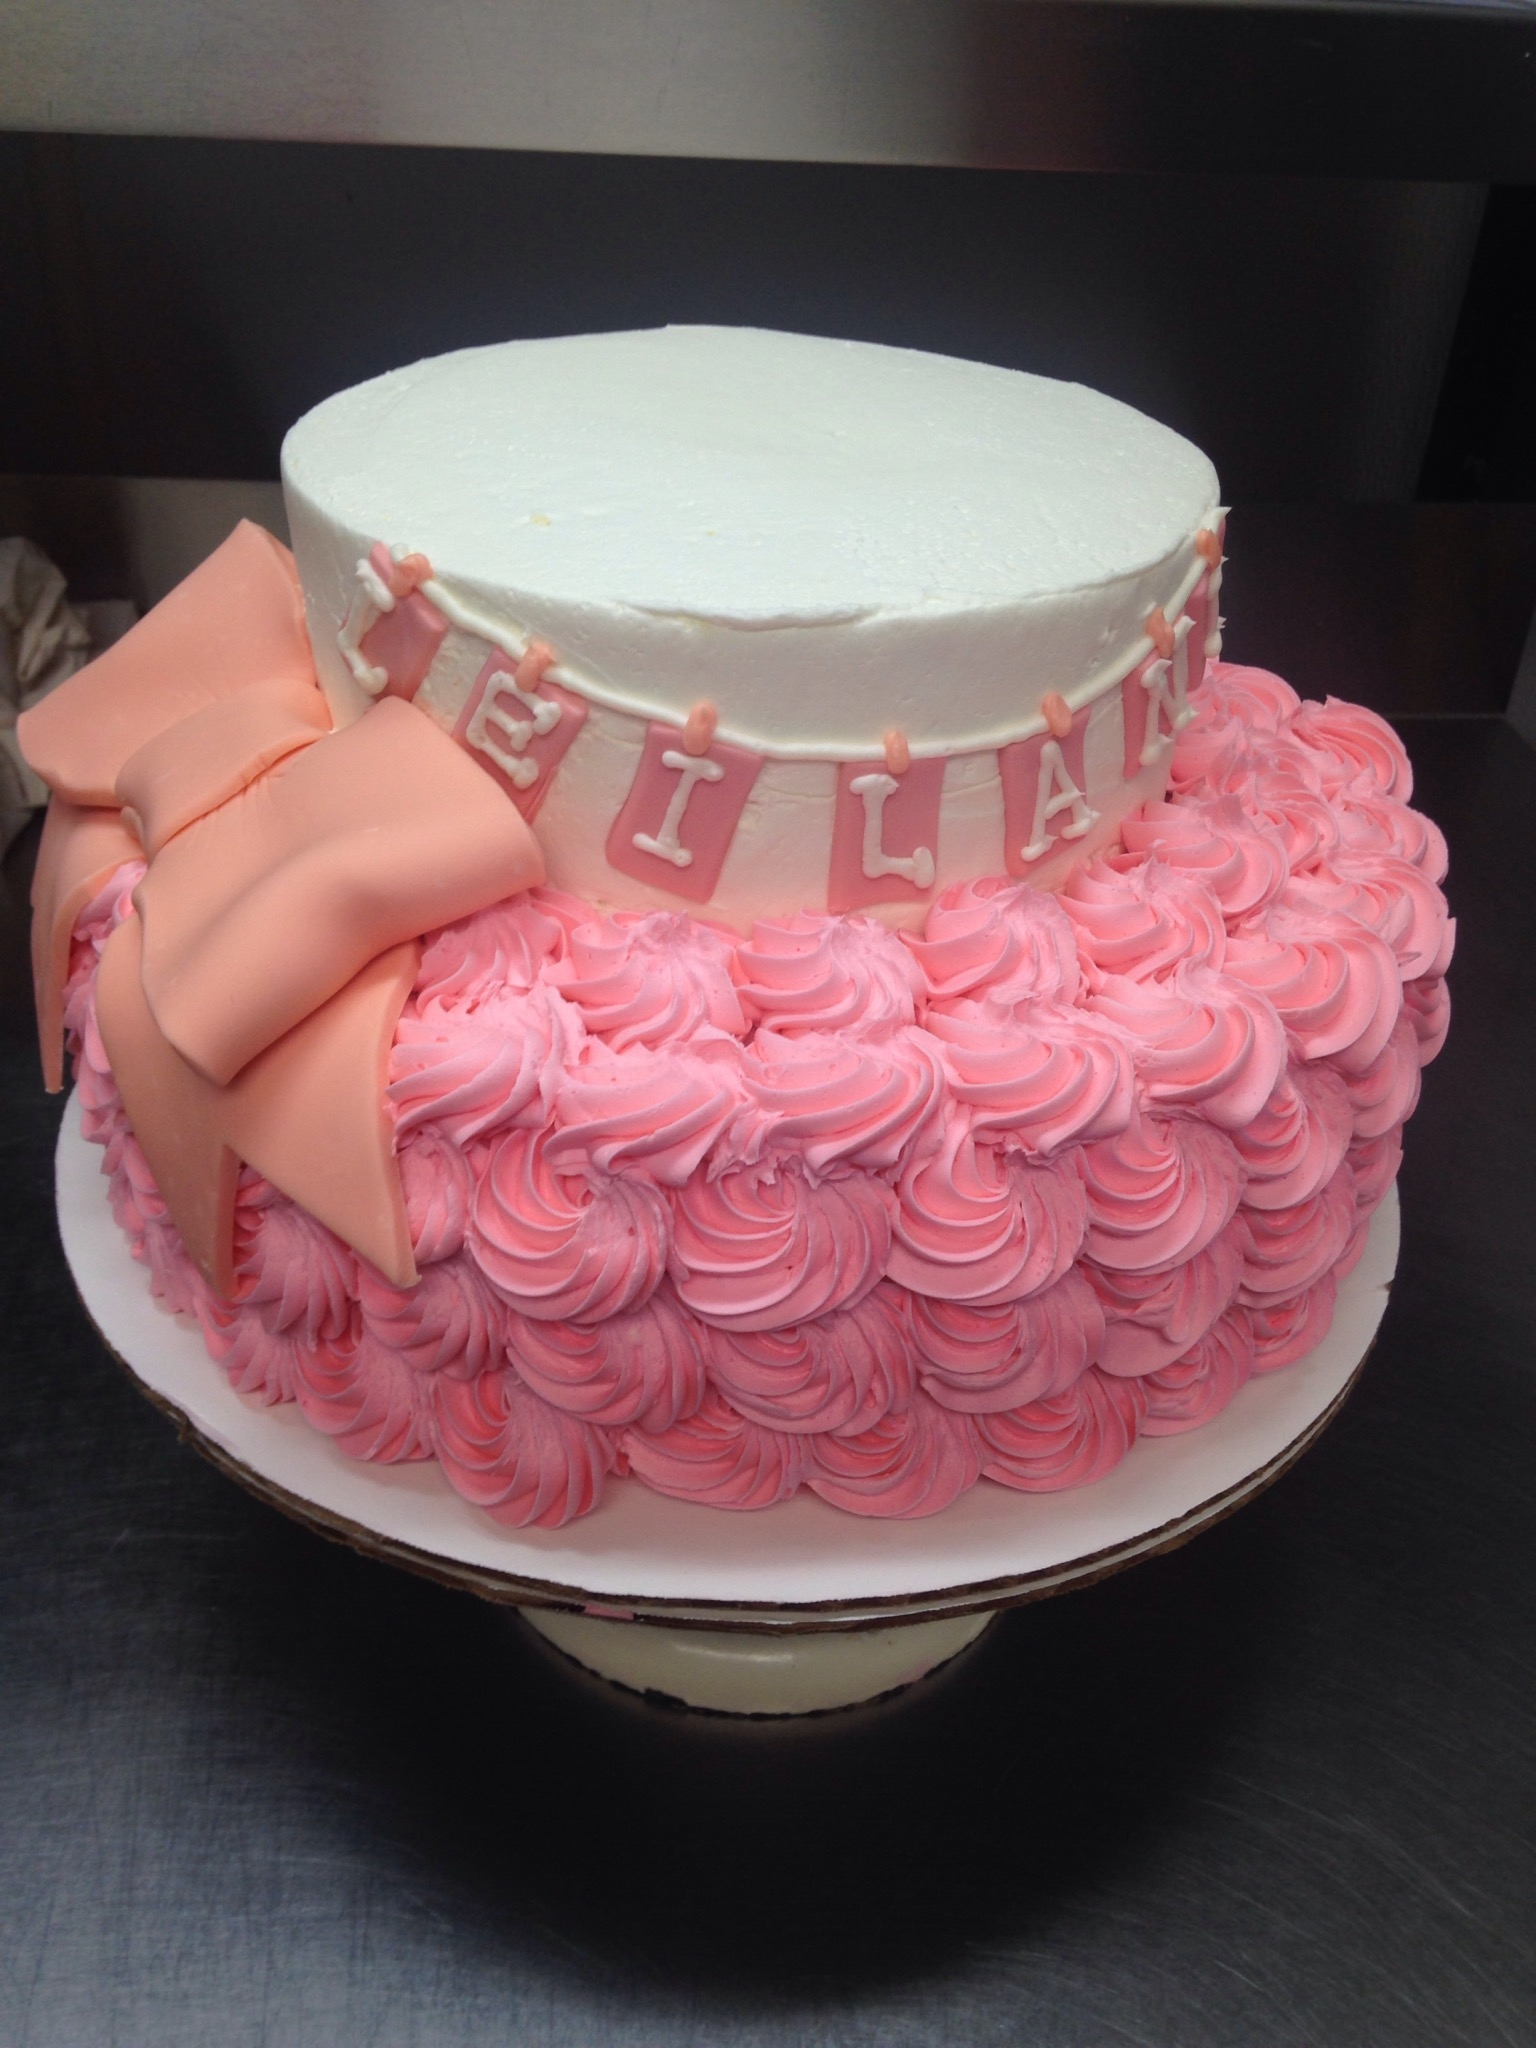 Rosette Cake Decorating Photos